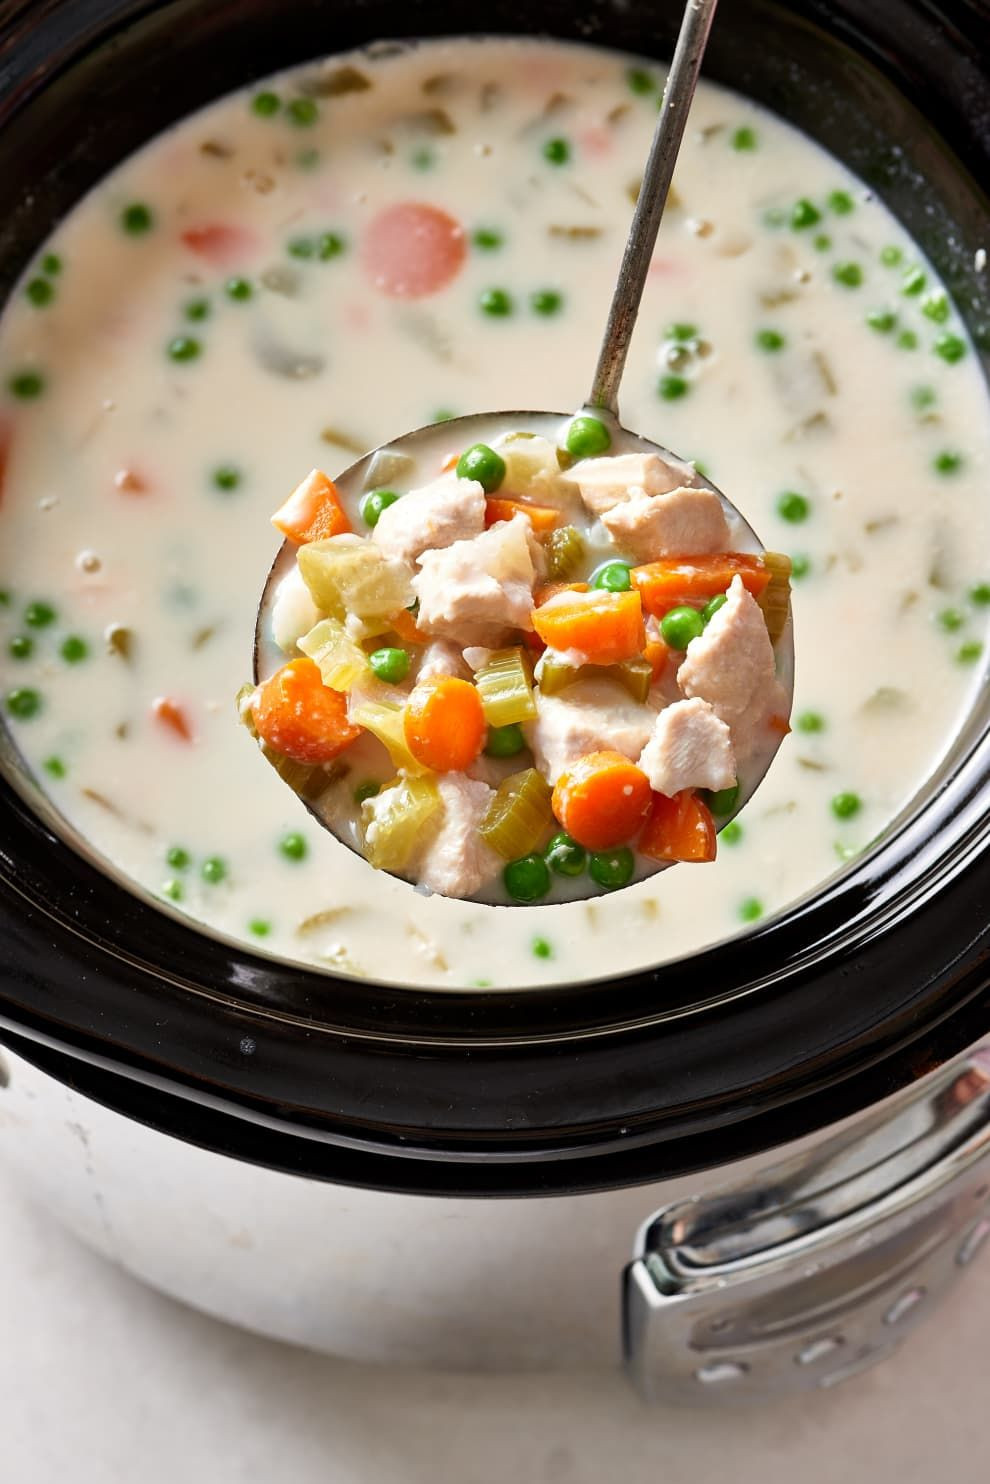 Cream Of Chicken Soup Slow Cooker Recipe  How To Make Slow Cooker Cream of Chicken Soup